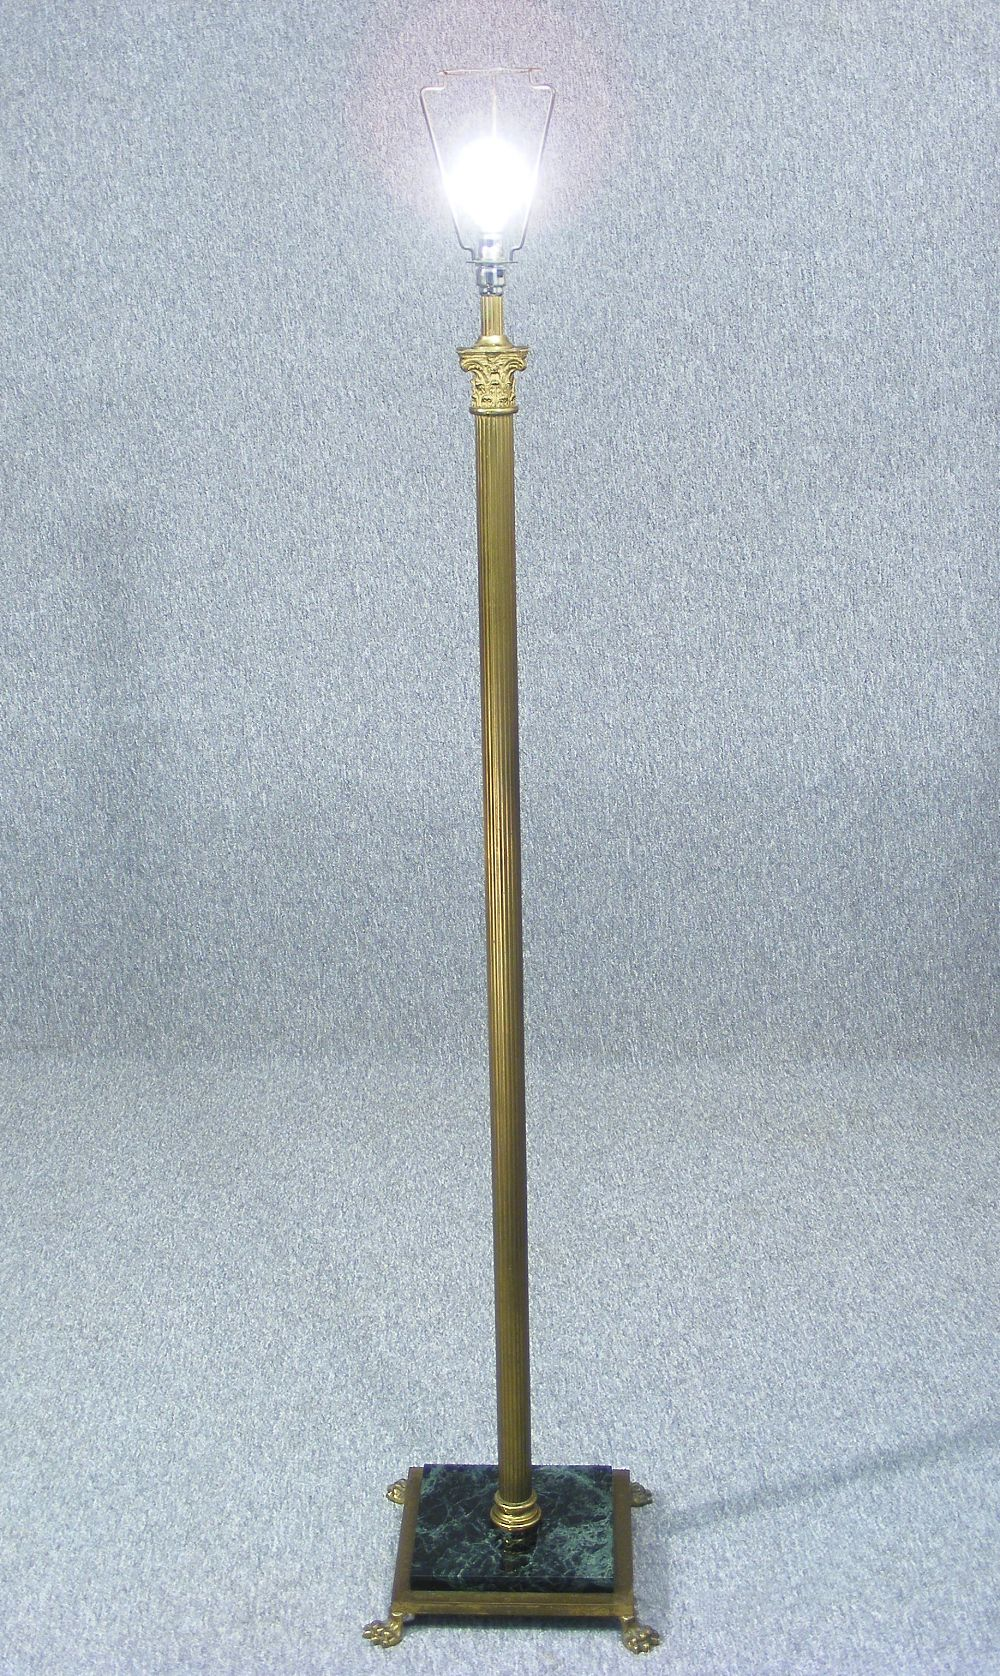 This Is A Fabulous Vintage Brass Standard Lamp Stand In The Neoclassical Style Fluted Corinthian Style Brass Column Standard Lamps Corinthian Capital Clawfoot